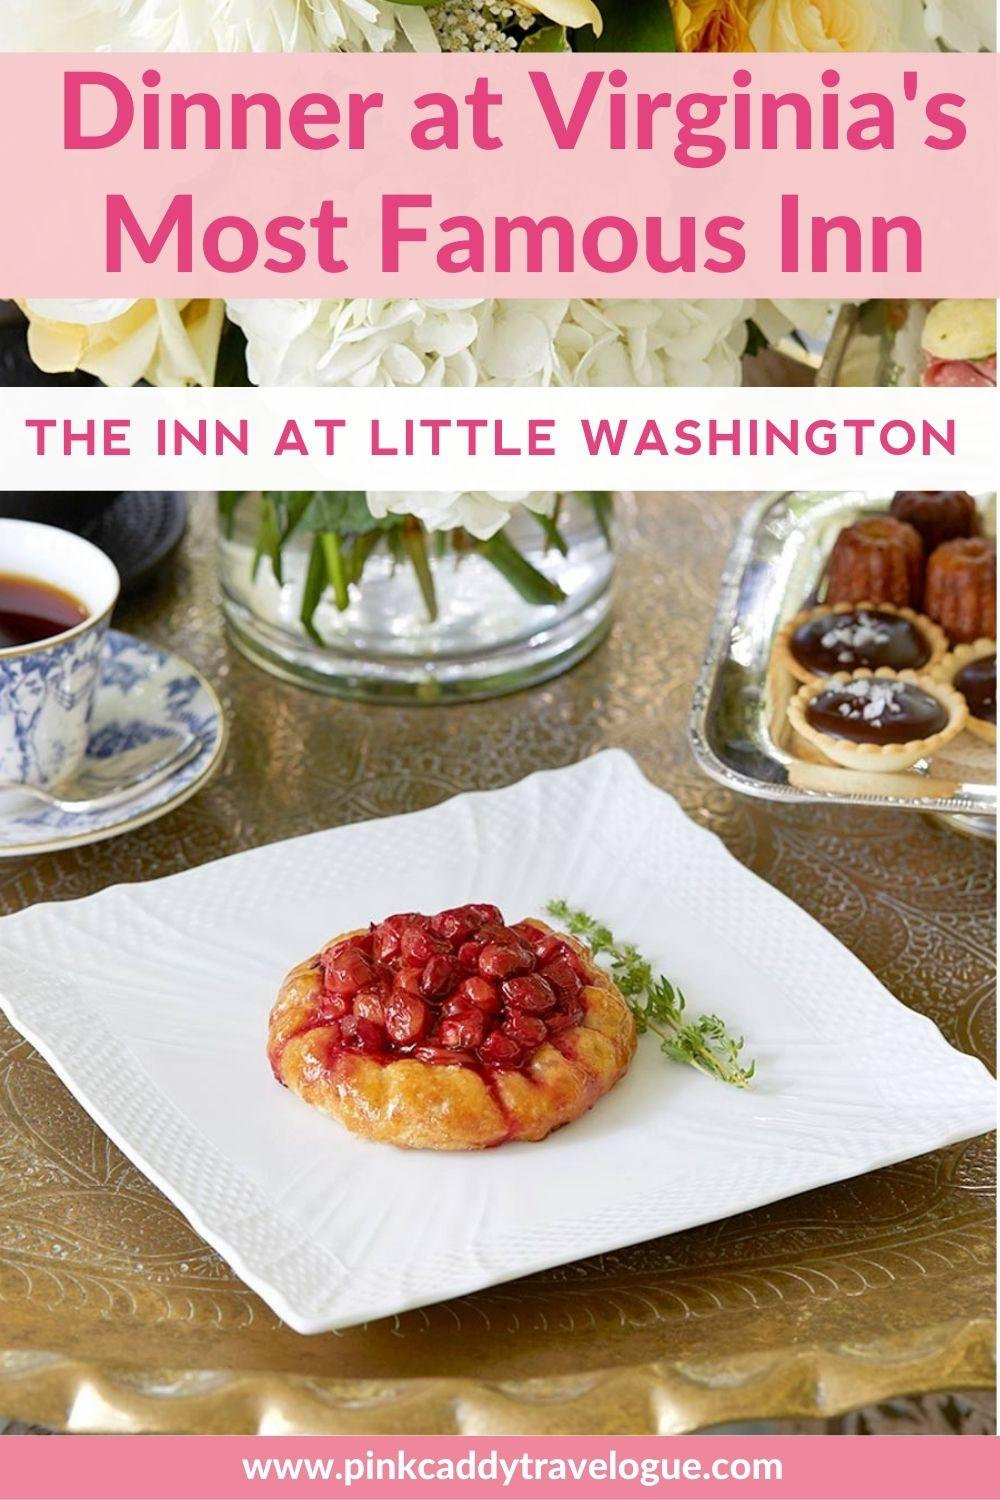 The Inn at Little Washington is the only resturant with 3-Michelin stars in the DC area. To know what it's like to eat there, check out my review! #virginia #foodie #innatlittlewashington #michelinresturants